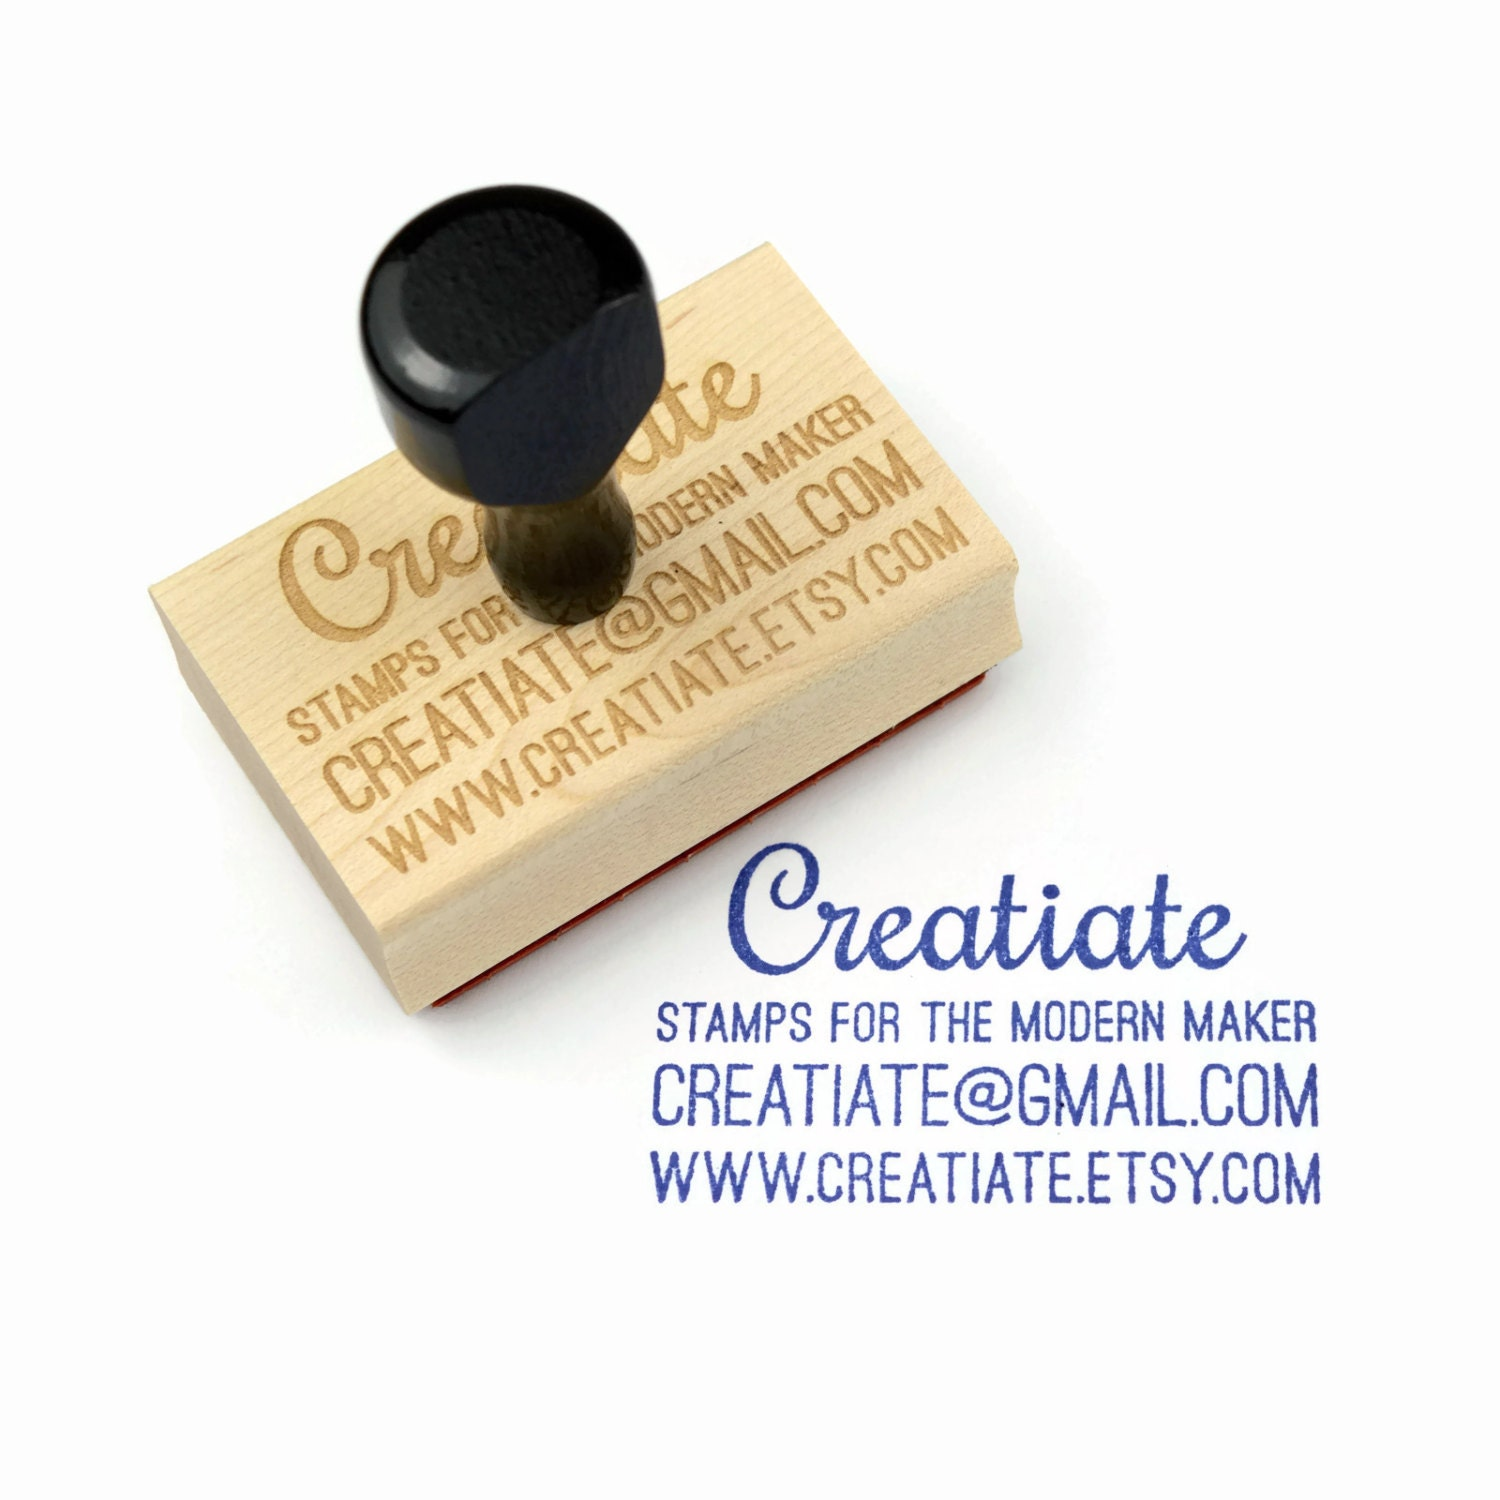 Custom Rubber Stamps by Rubber Stamp Man - oukas.info